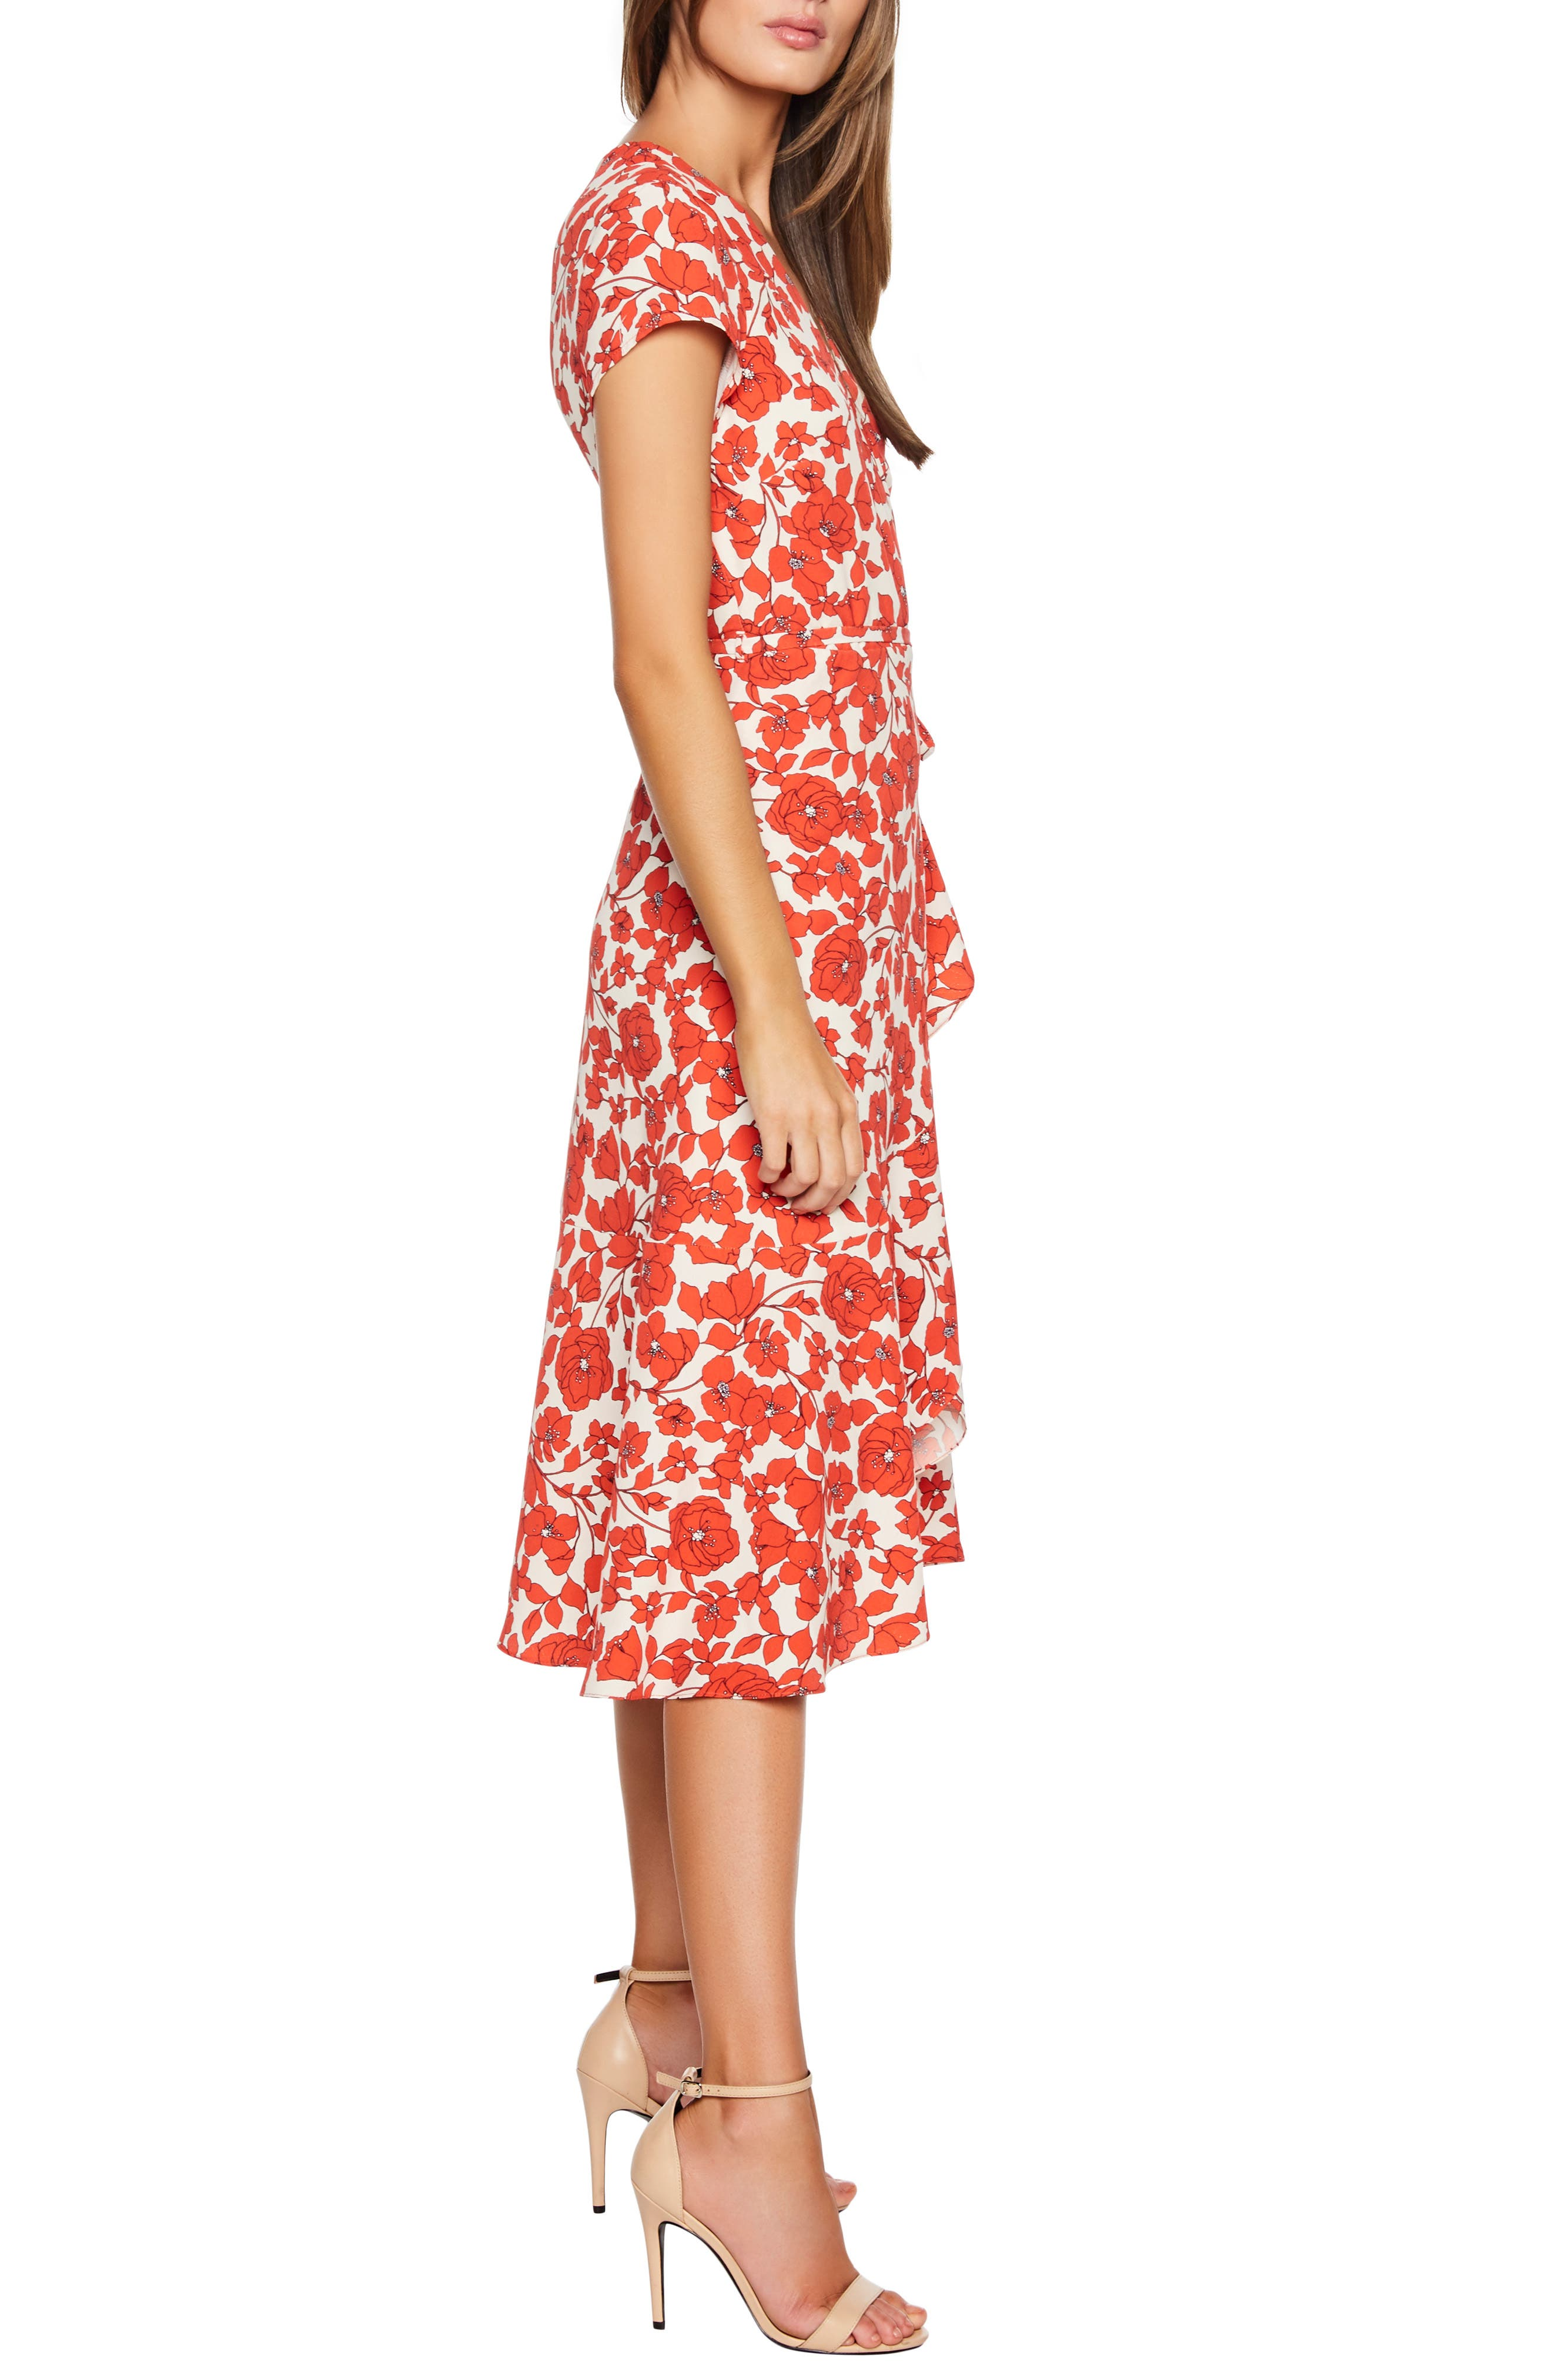 BARDOT,                             Fiesta Floral Midi Dress,                             Alternate thumbnail 4, color,                             ORANGE FLORAL